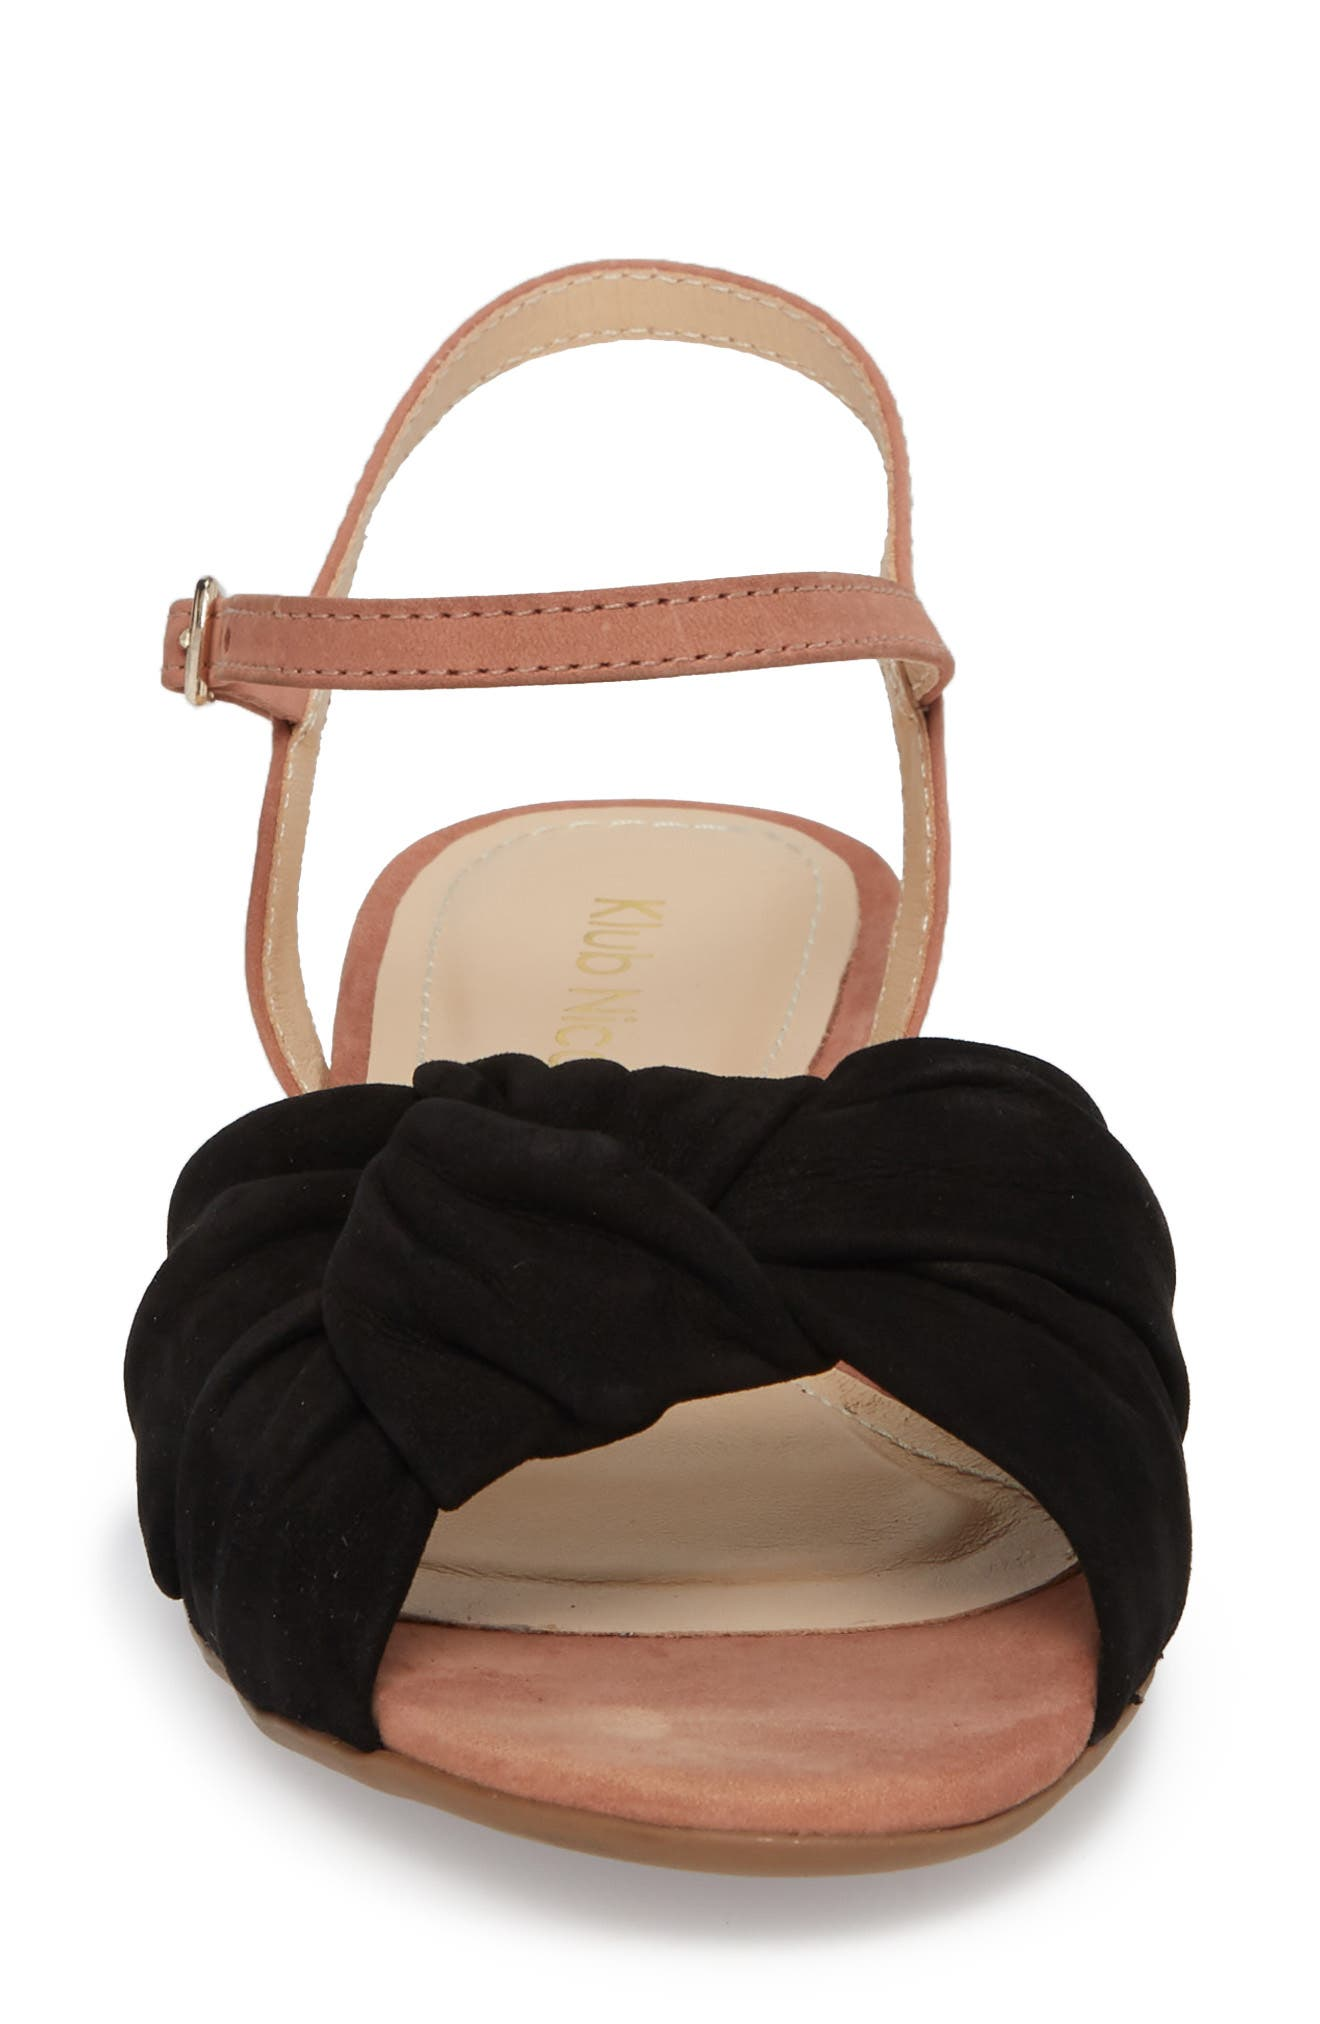 Giley Sandal,                             Alternate thumbnail 4, color,                             BLACK NUBUCK LEATHER